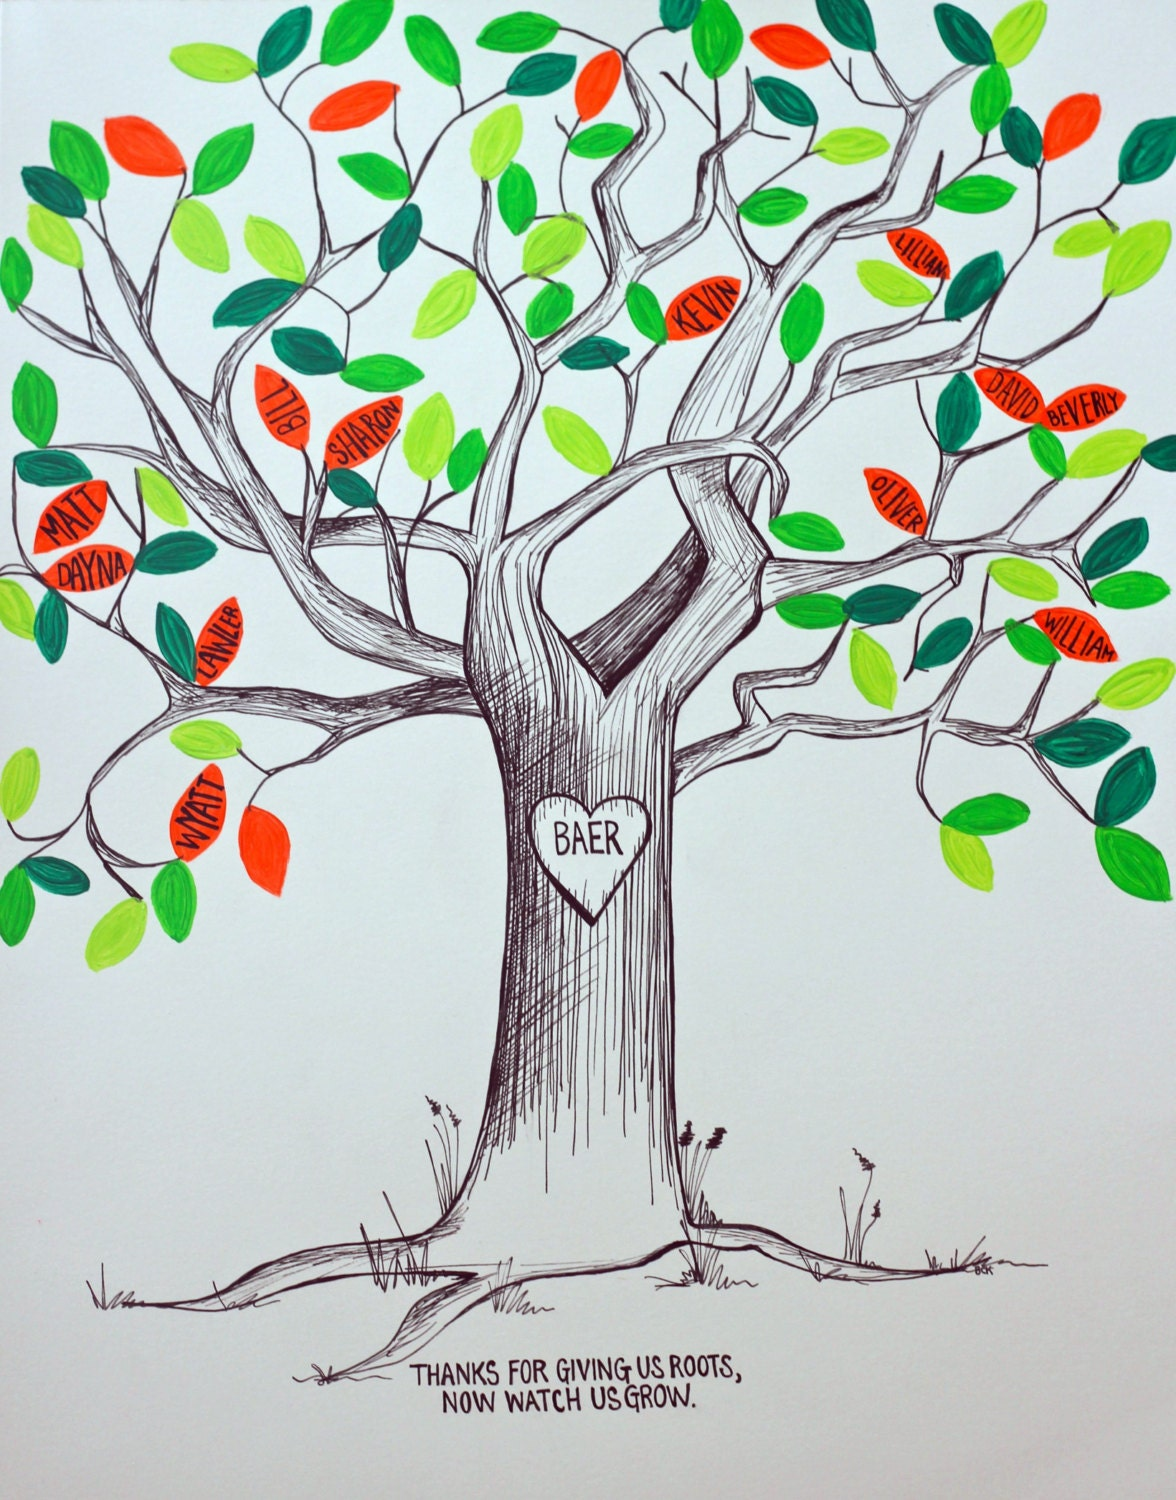 Hand Drawn Family Tree or Guest Book with Hand Painted Acrylic Leaves